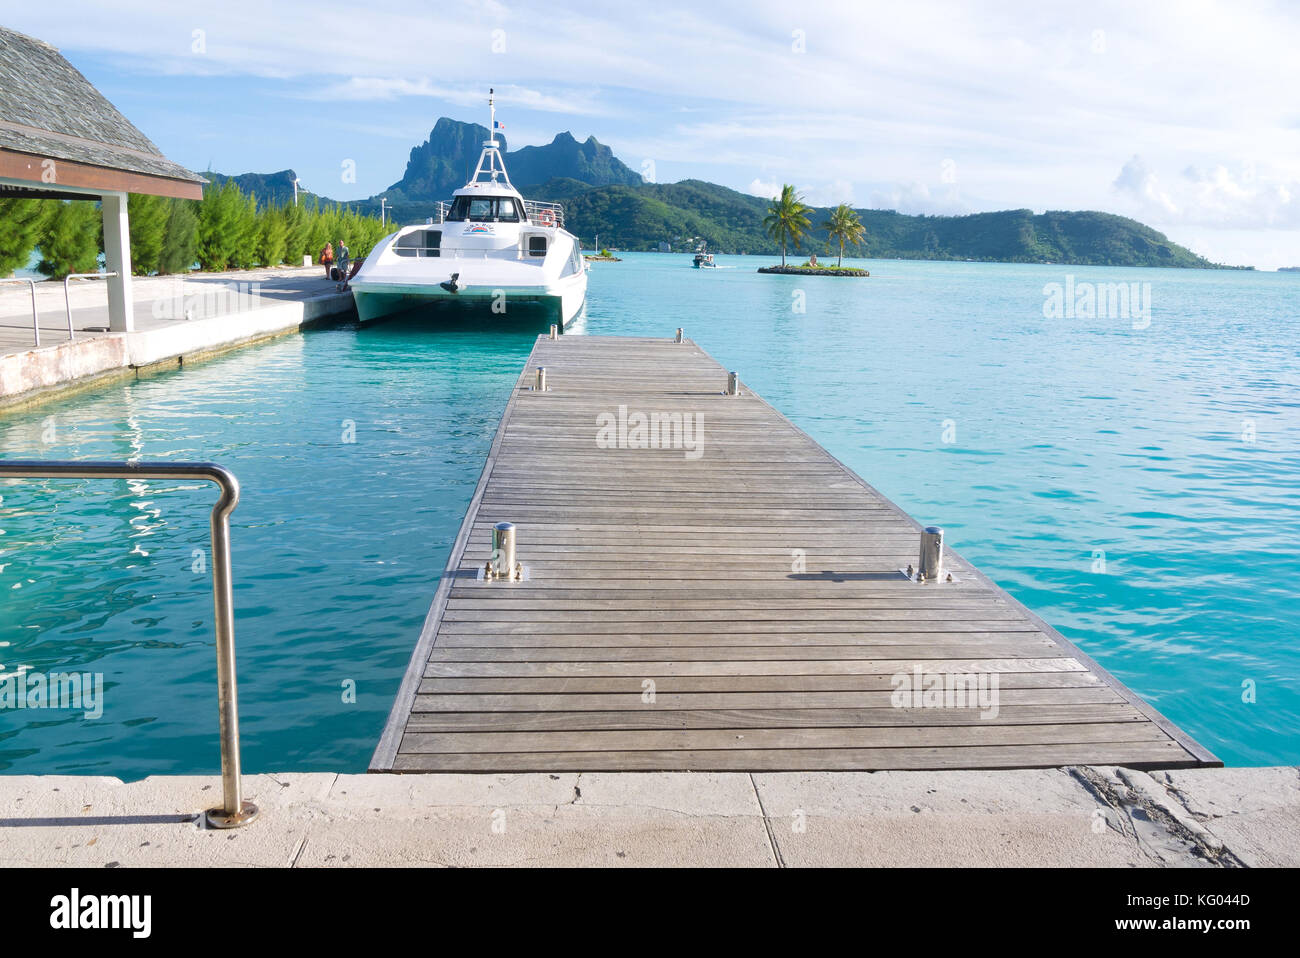 The Bora Bora airport in Motu Mute, French Polynesia caters to both air travel and sea travel with an assortment - Stock Image